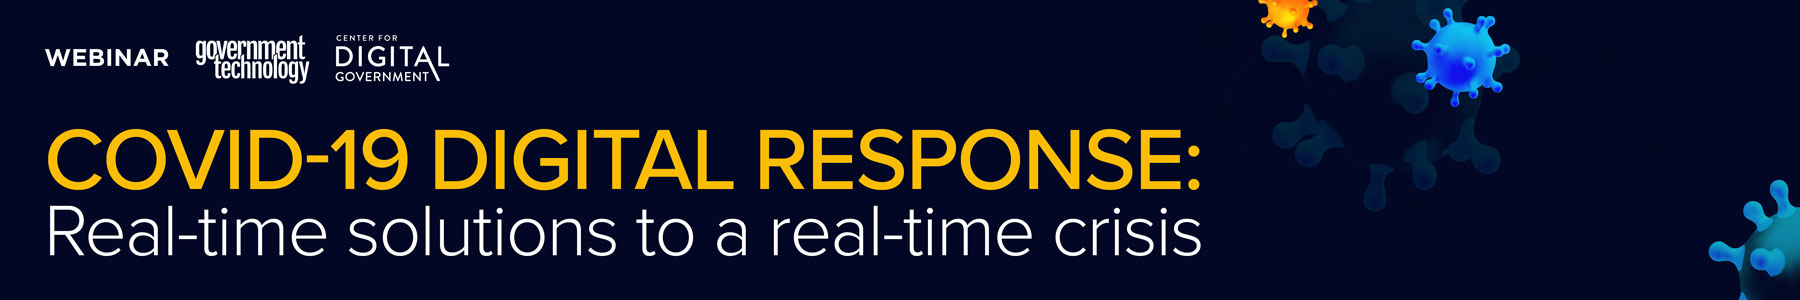 COVID-19 Digital Response: Real-time solutions to a real-time crisis